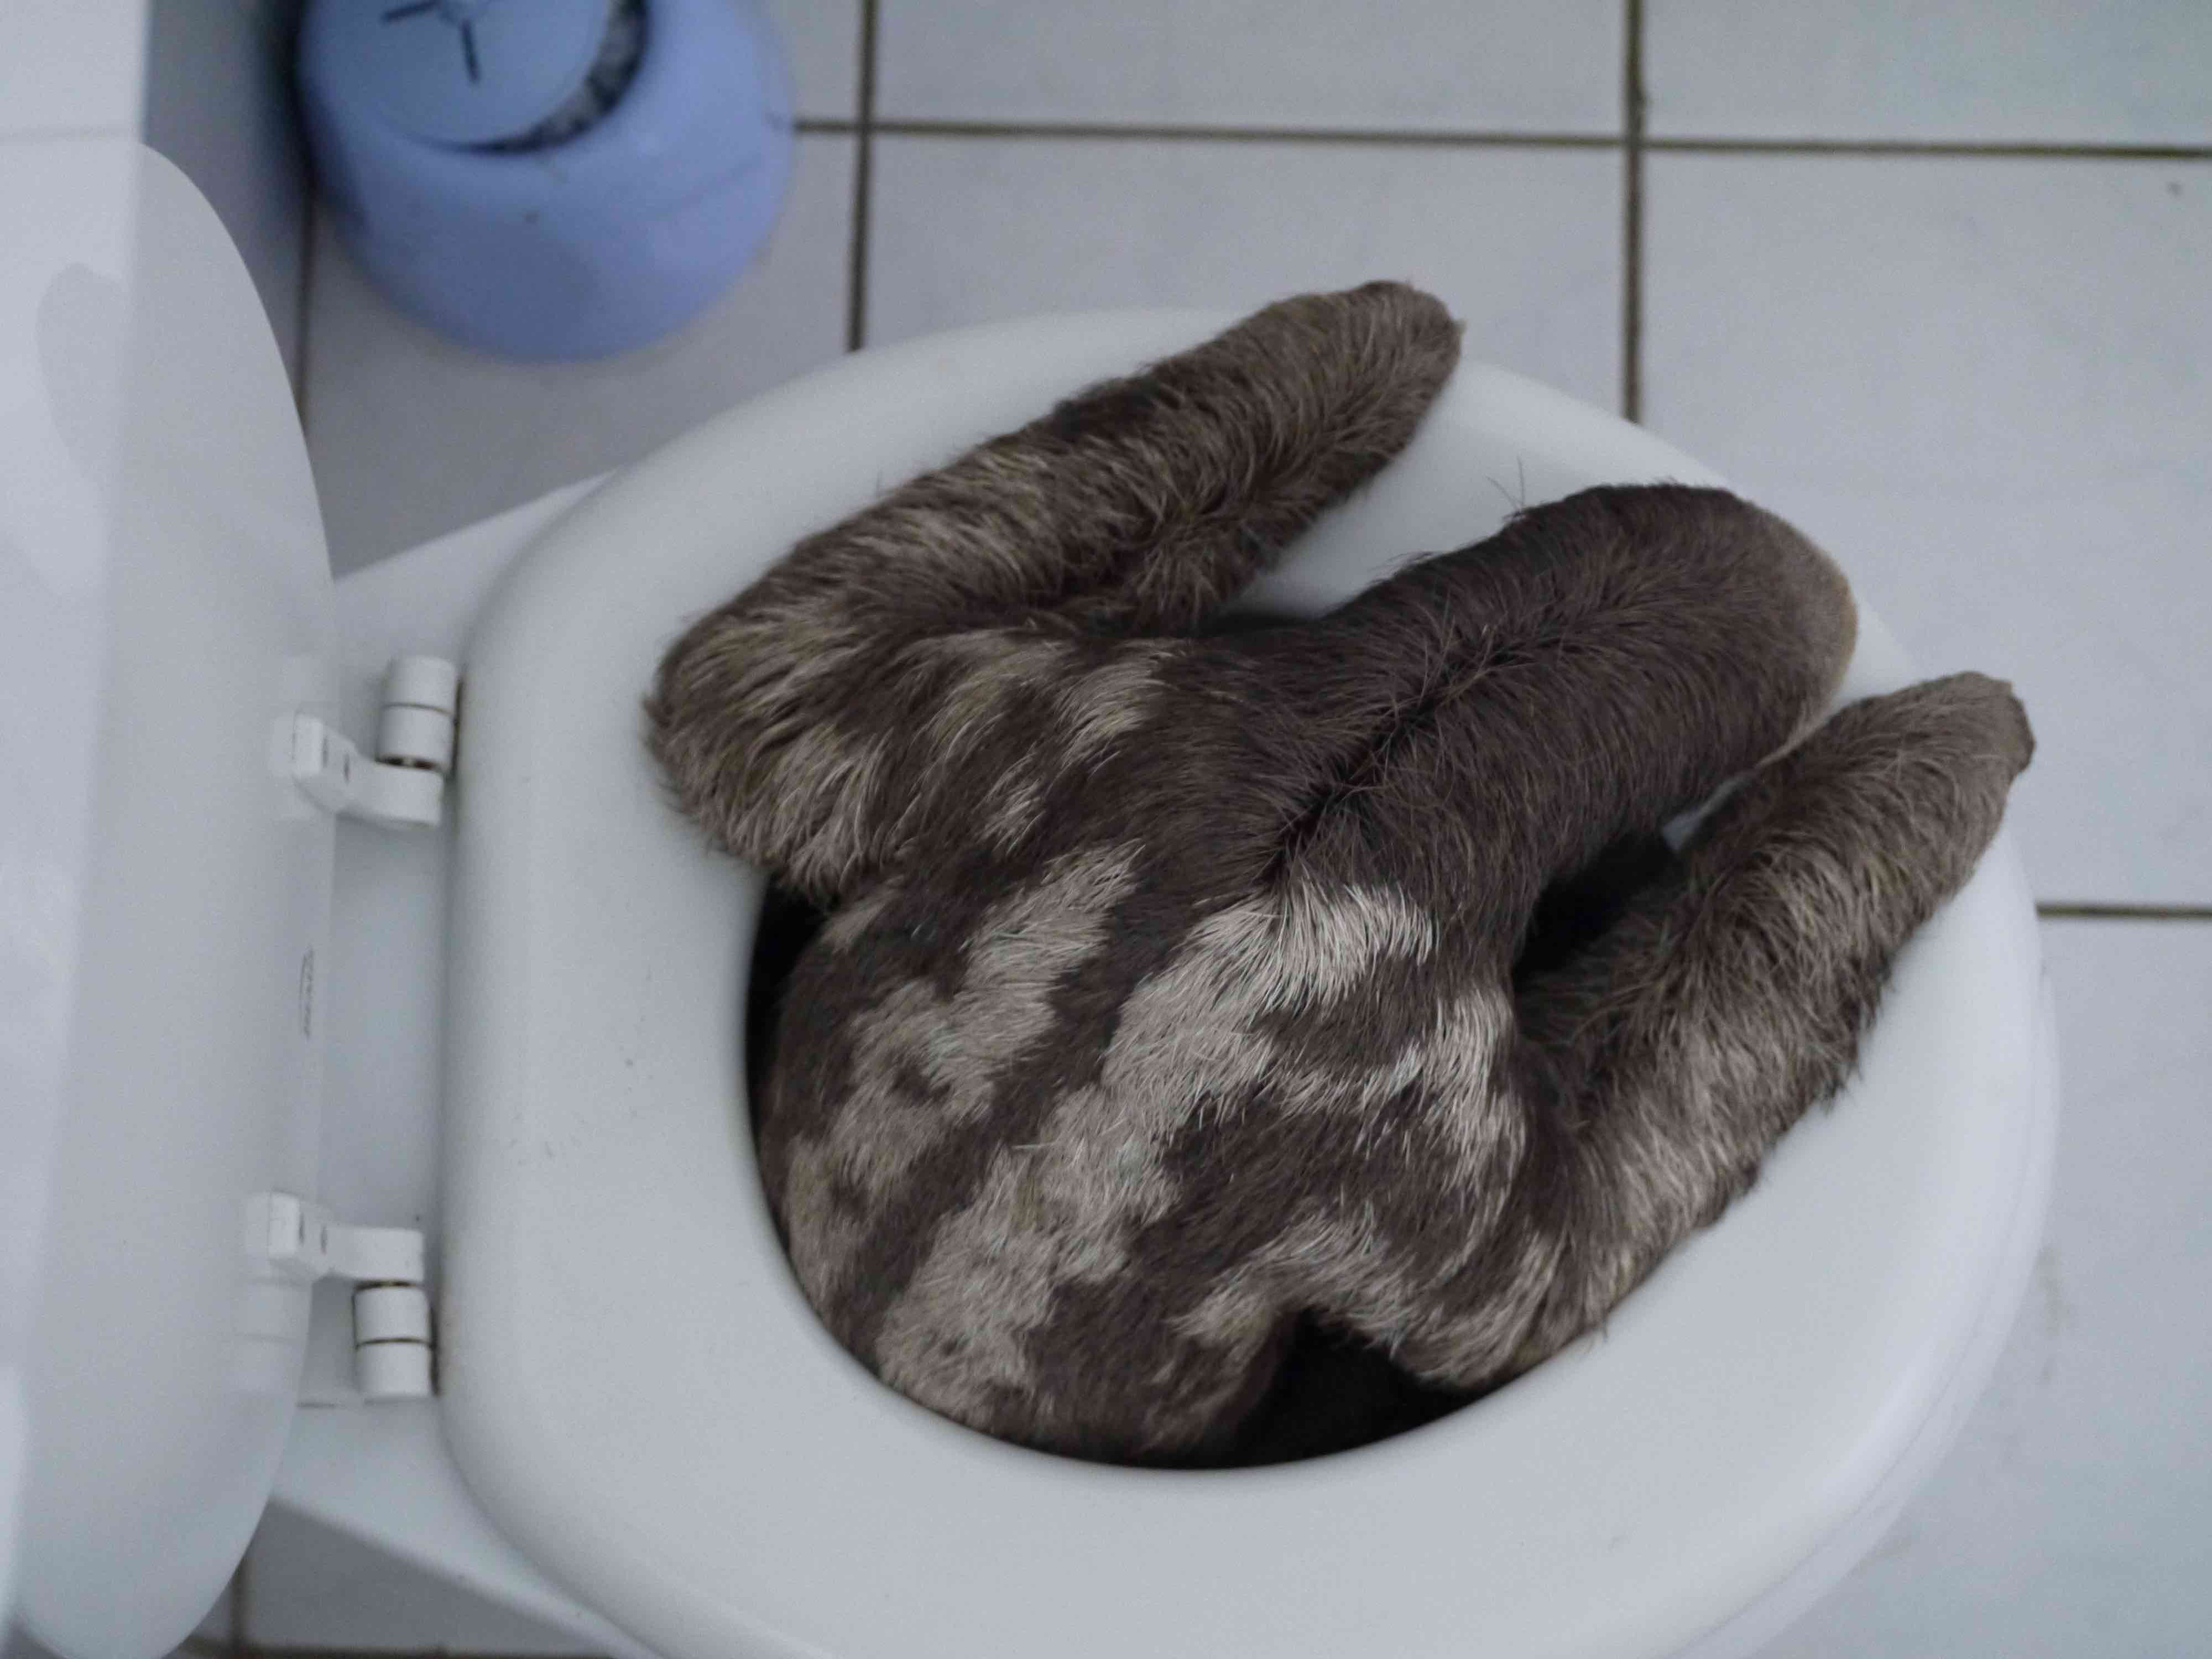 sloths but had never met one with such impeccable bathroom etiquette